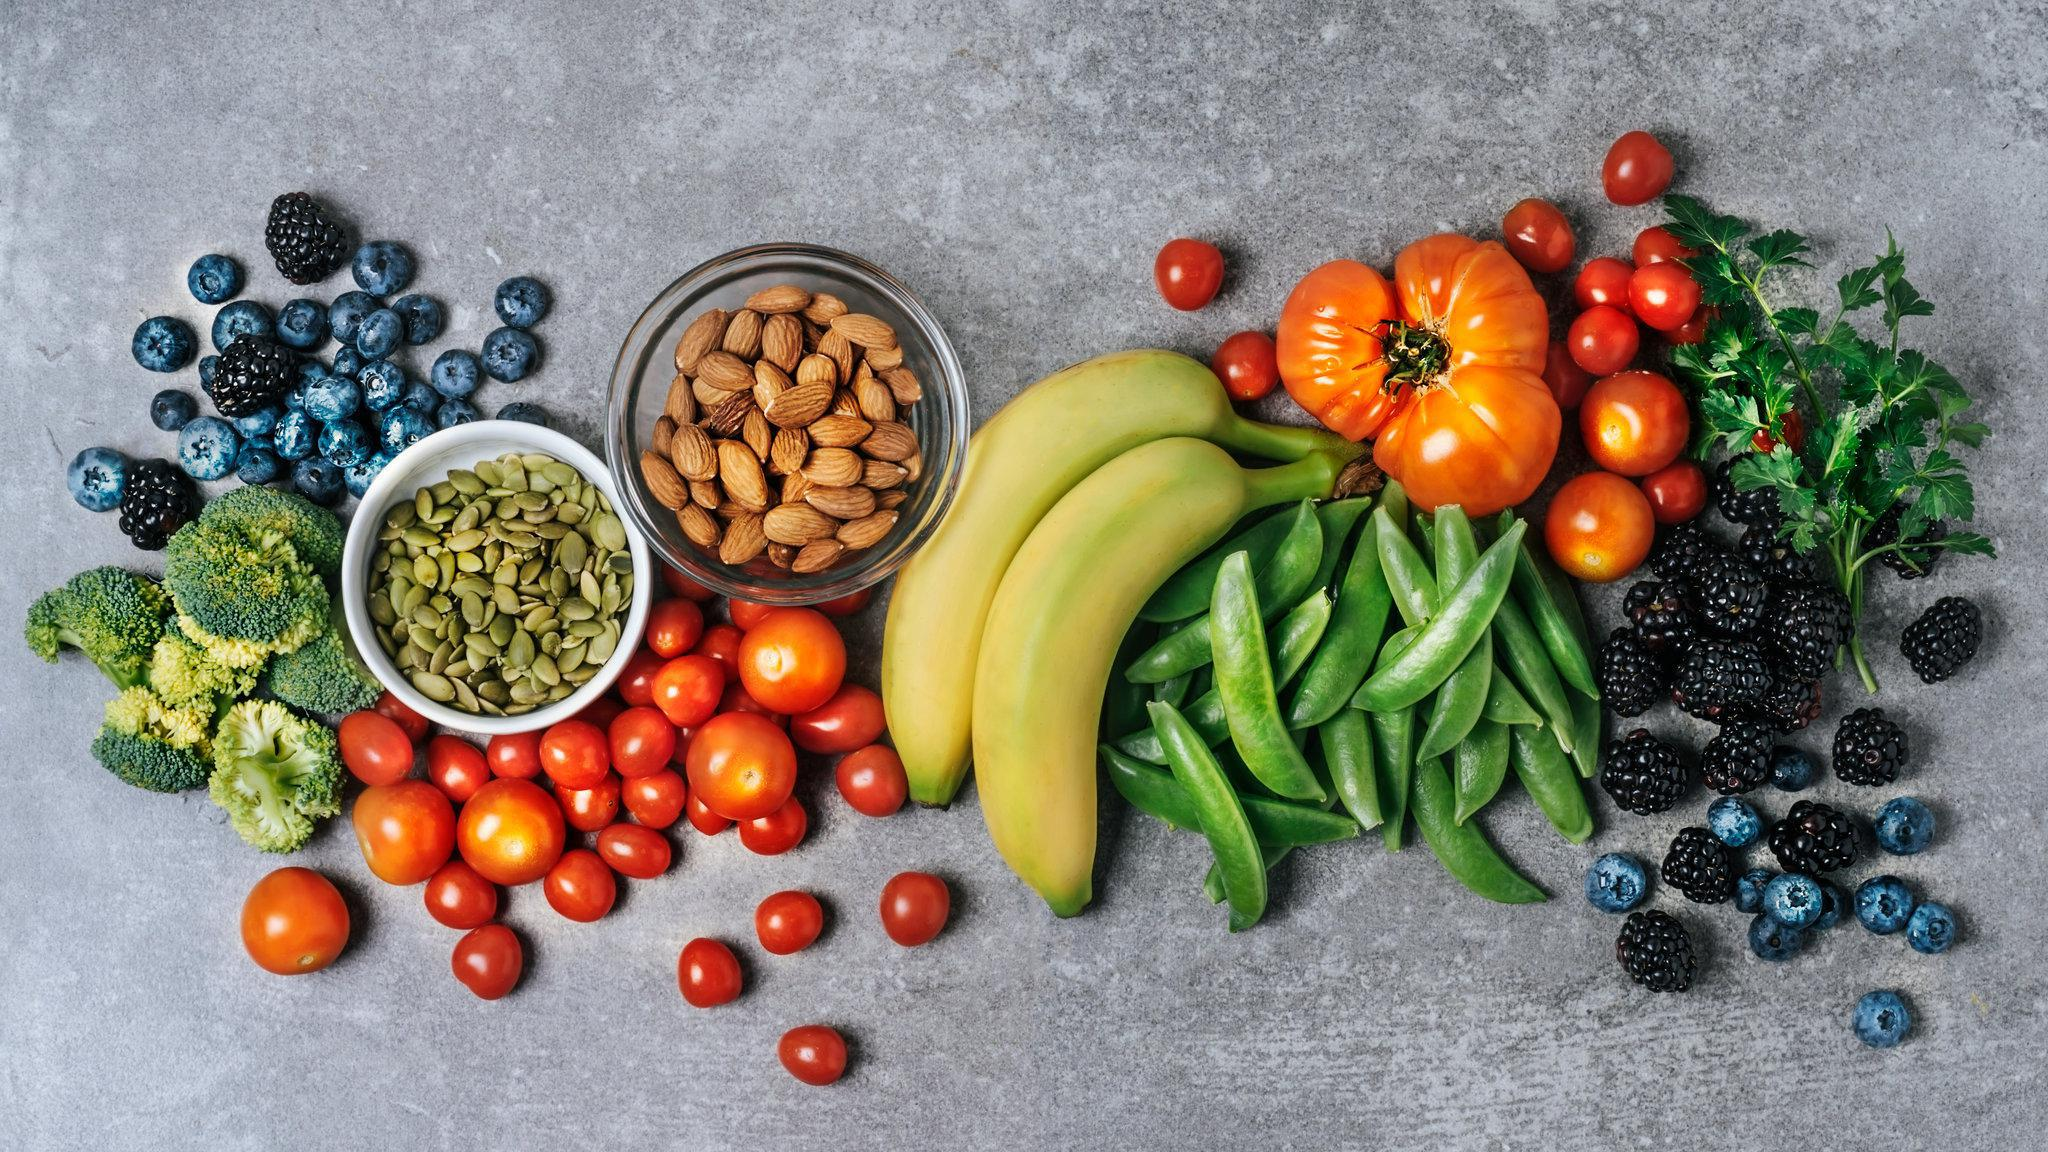 Food-Related Health Problems